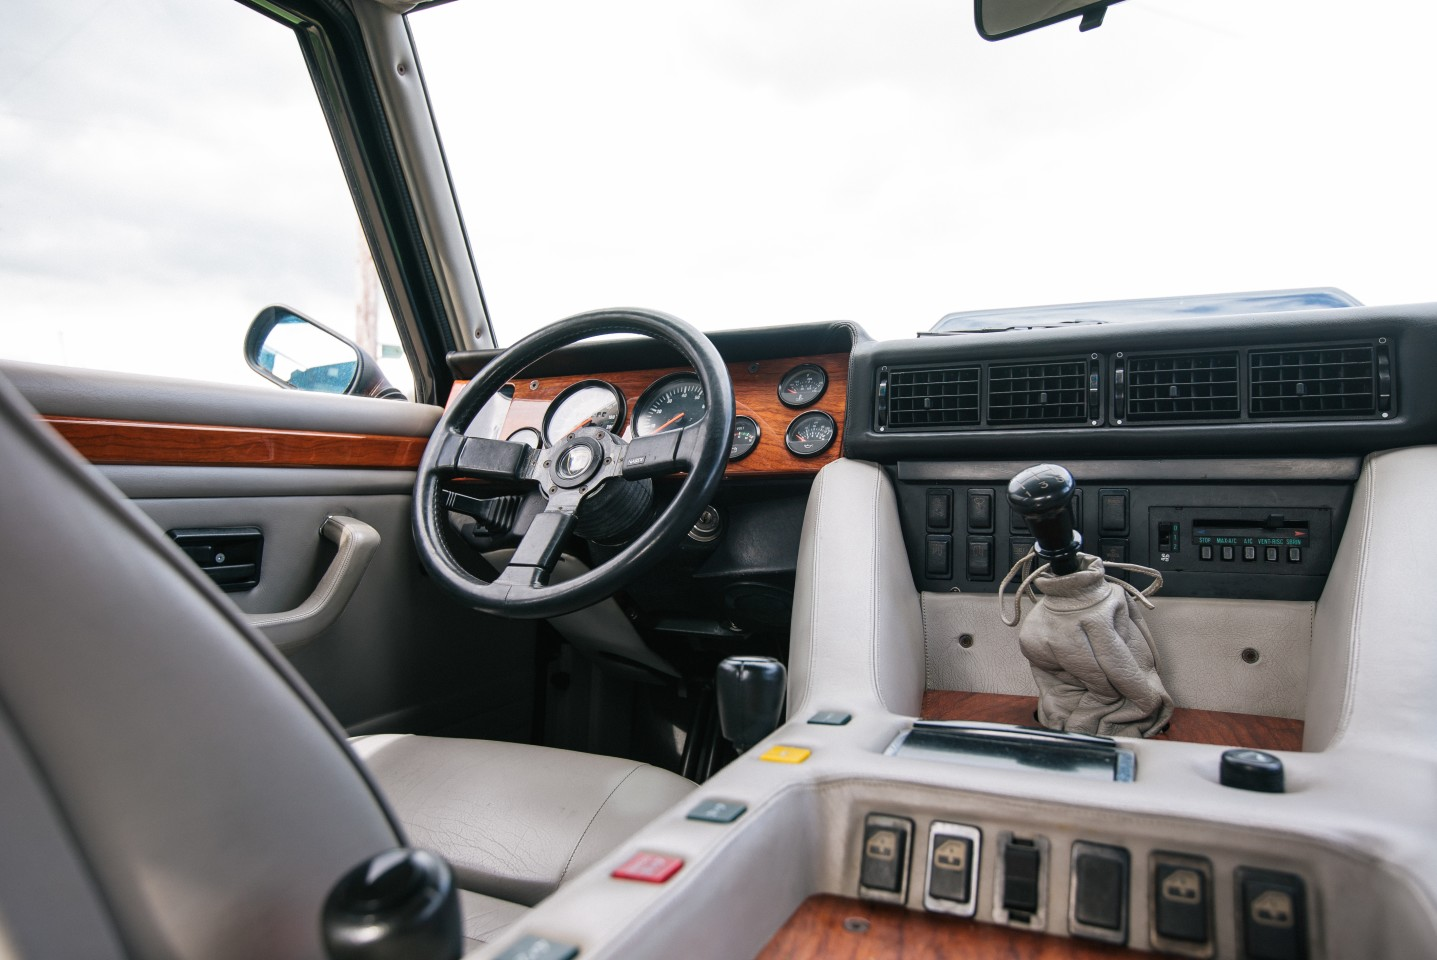 Gorgeous interior of the Lamborghini LM002